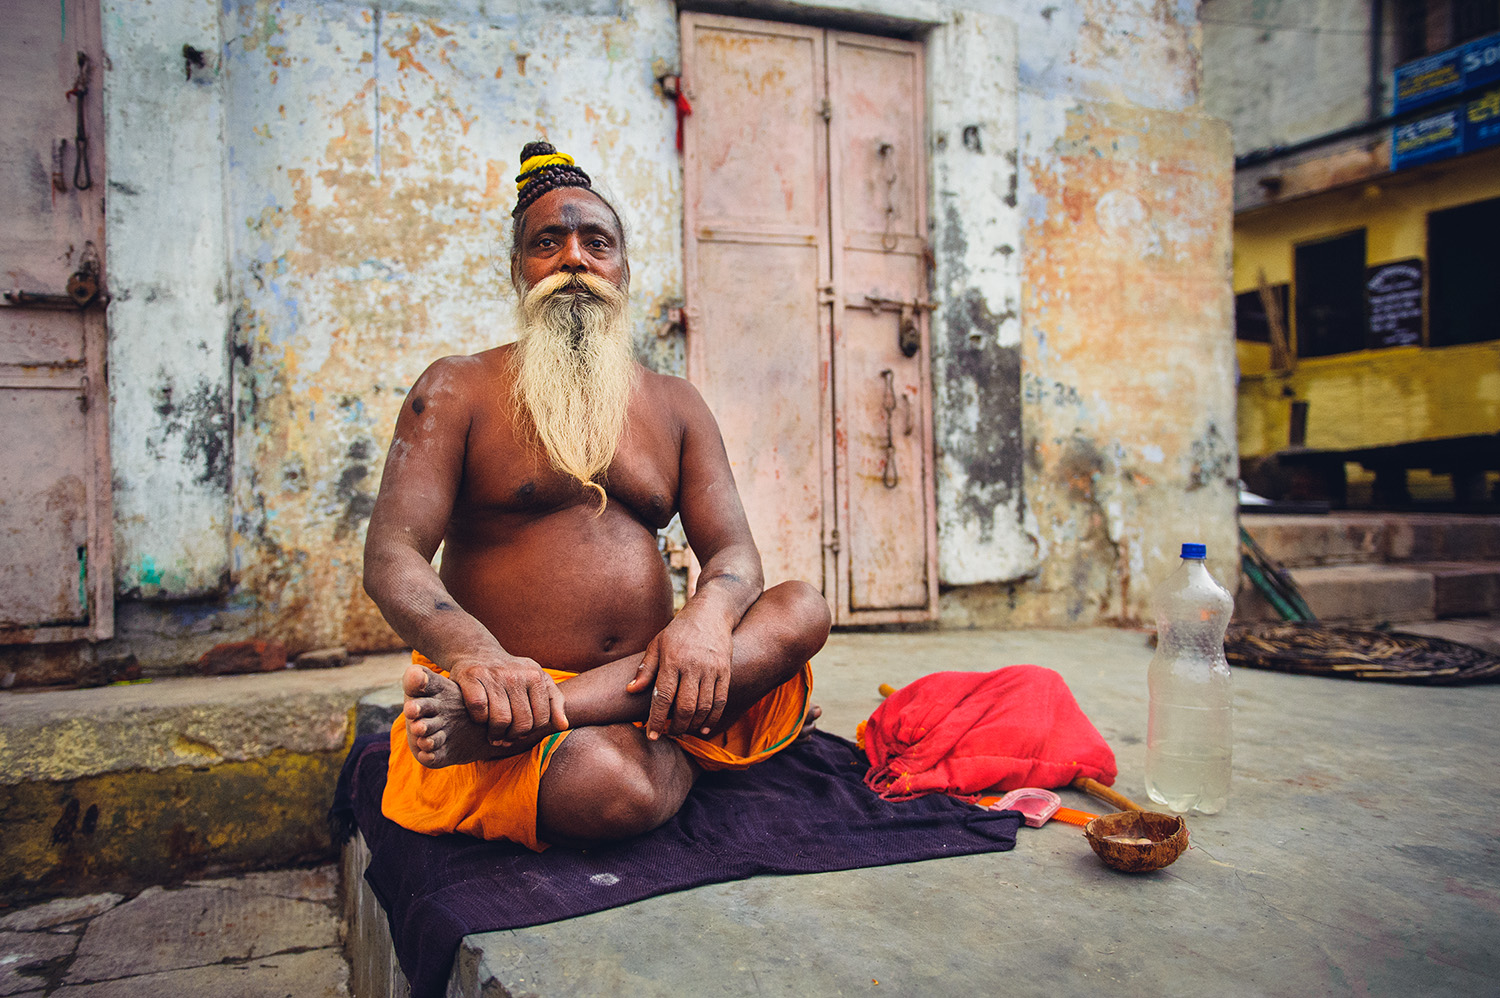 travel-photography-asia-india-varanasi-holy-man.jpg